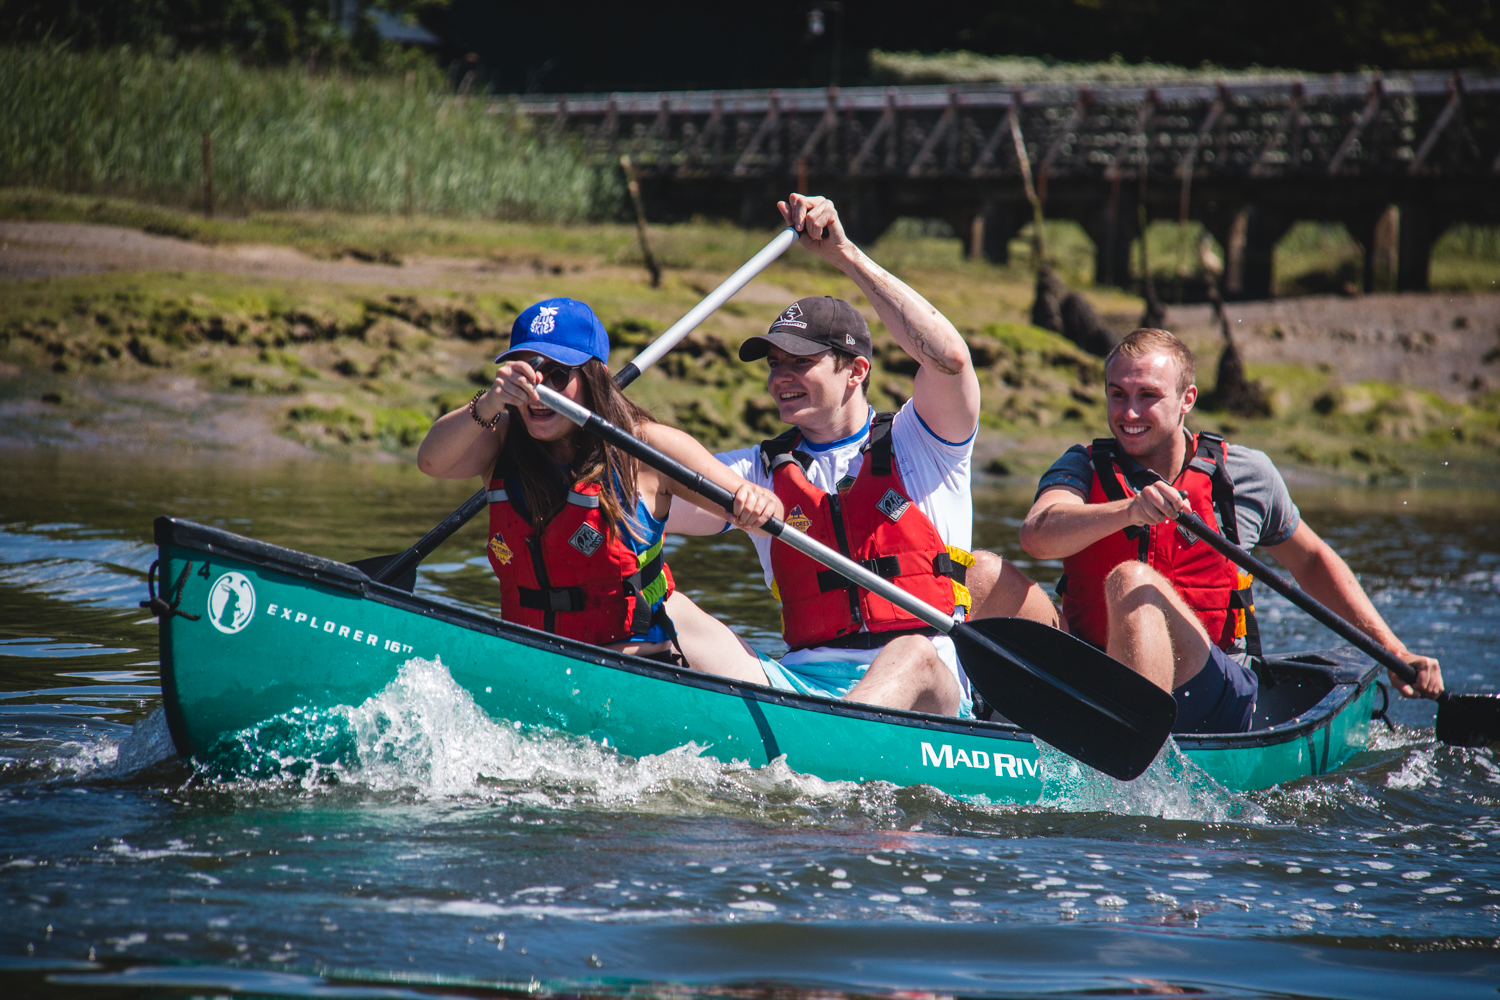 A group of colleagues canoeing on the Beaulieu River as part of a team building day